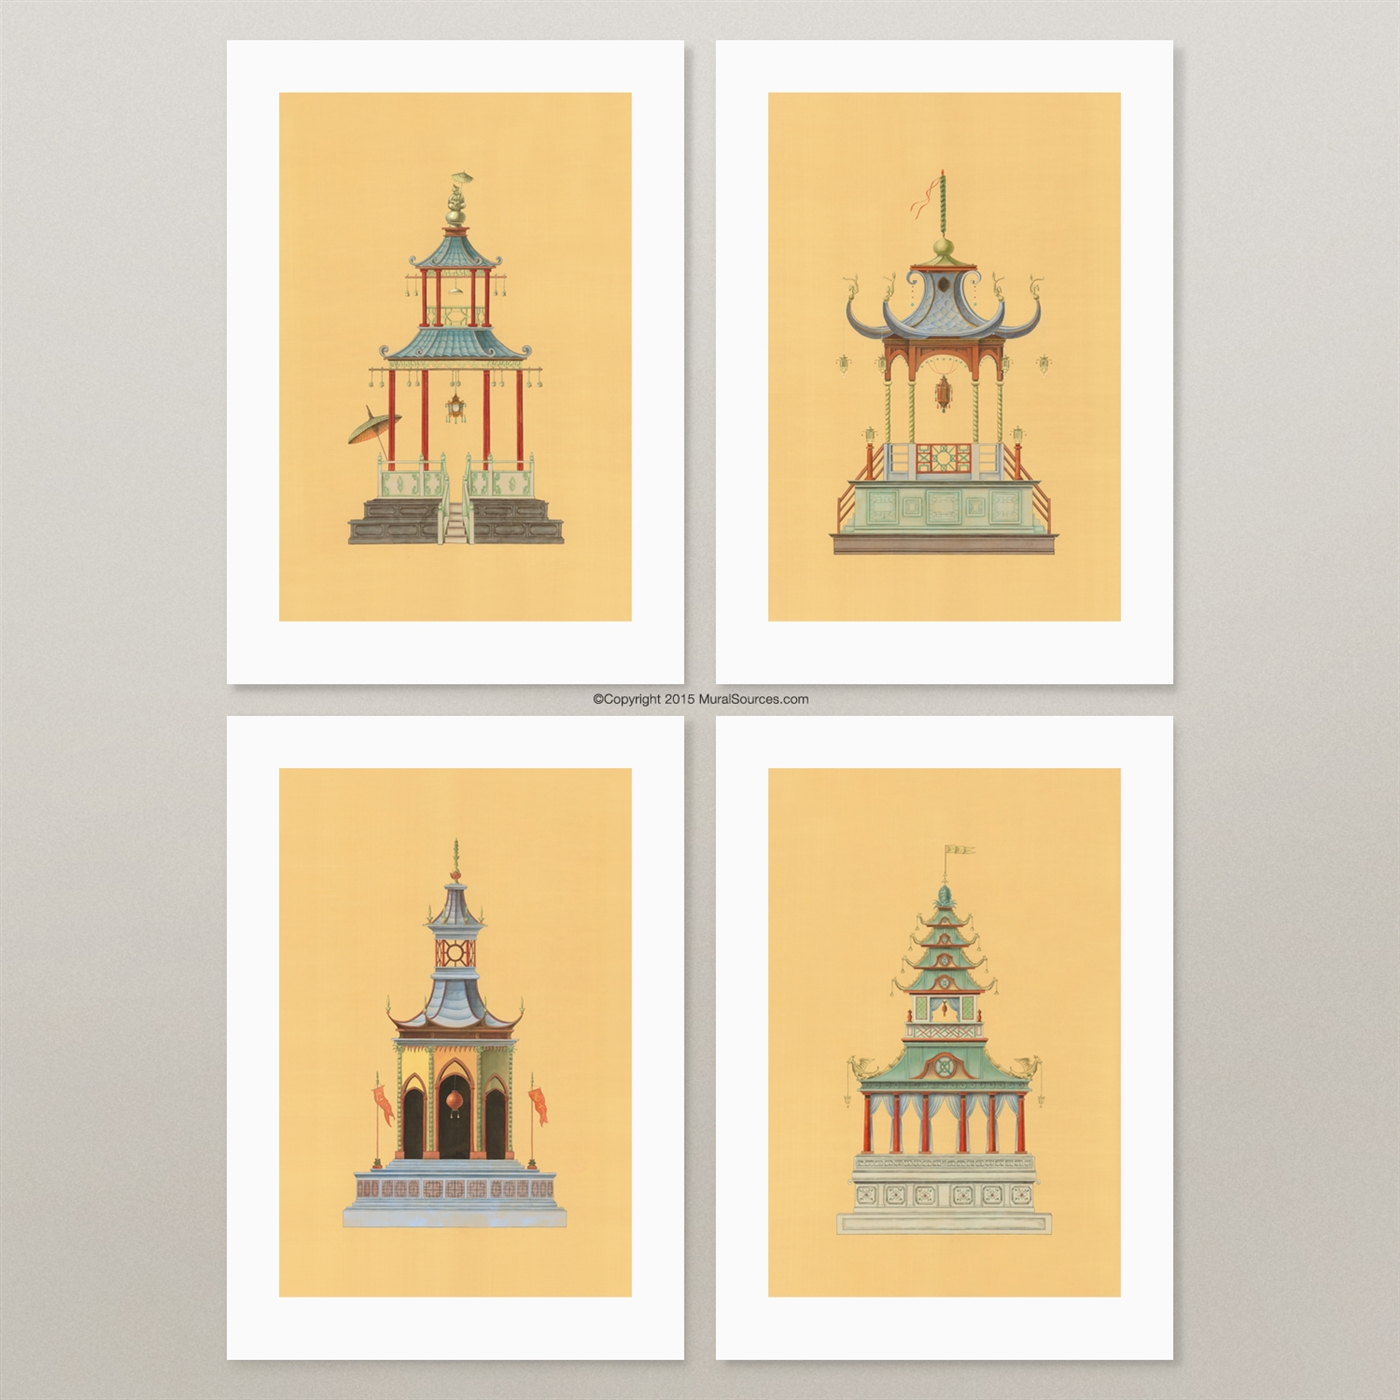 golden pagodas prints for framing